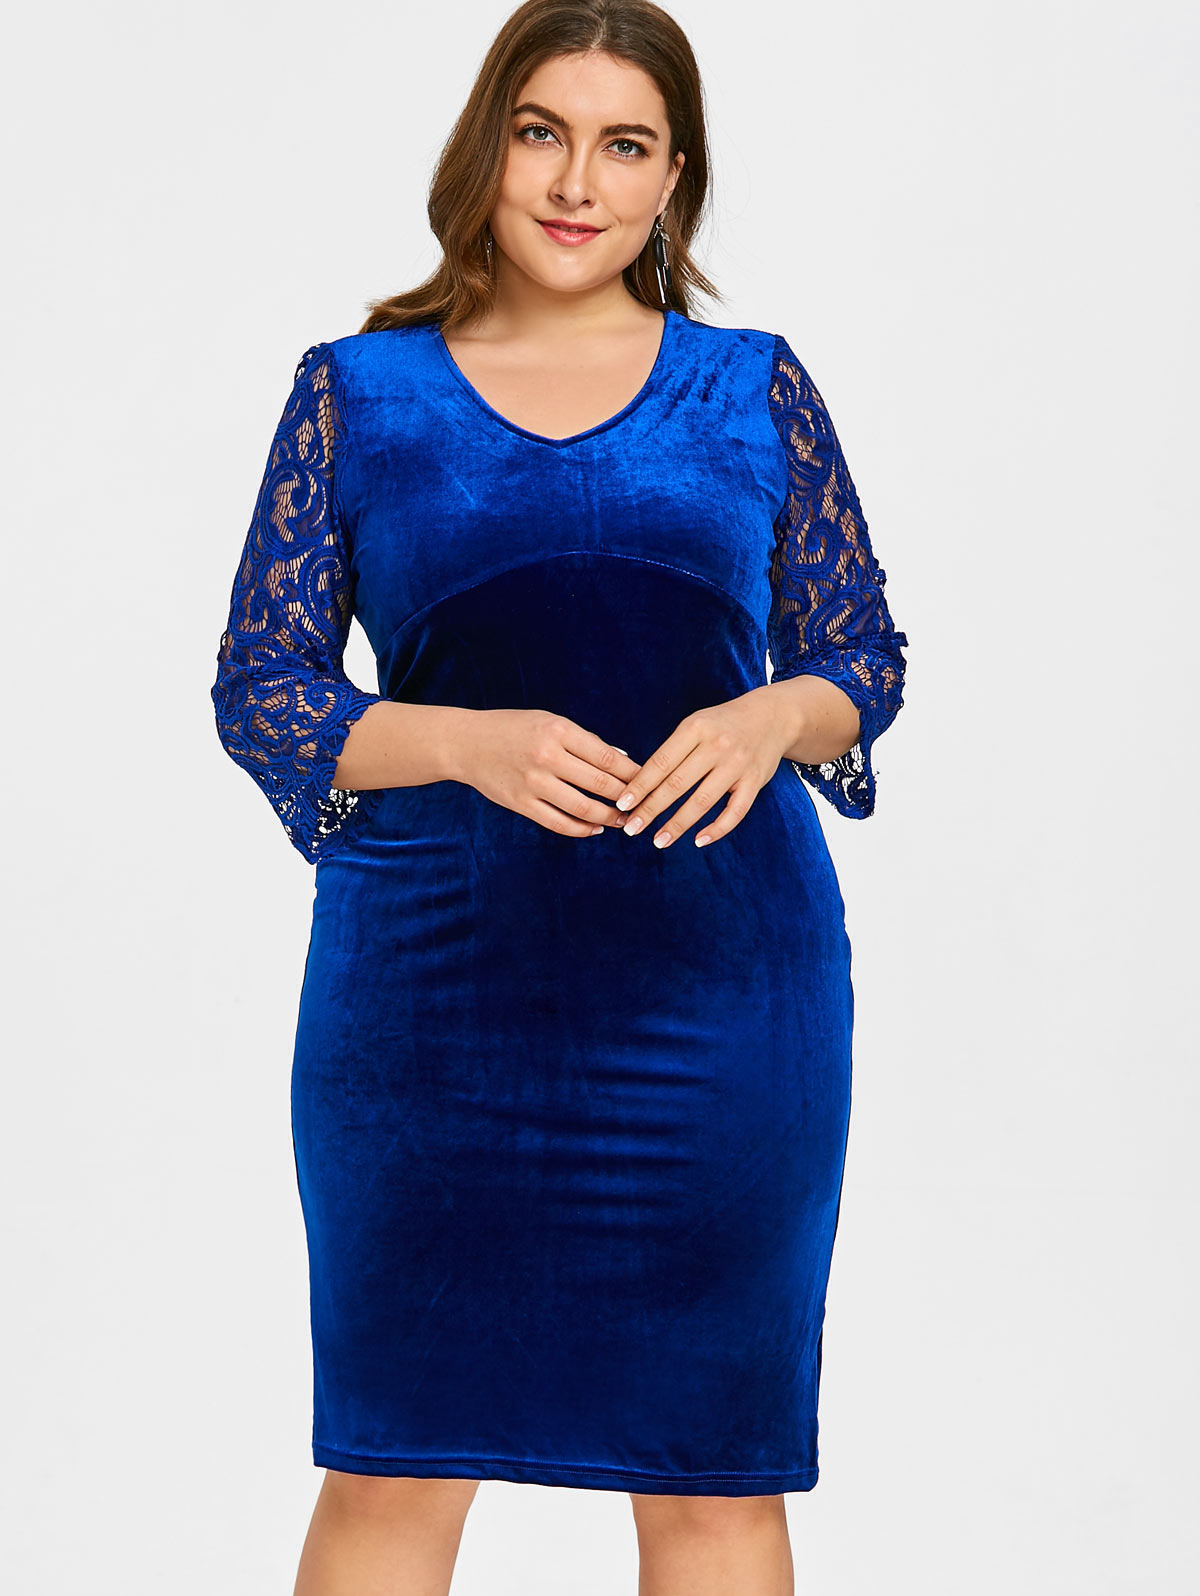 US $15.65 48% OFF|Wipalo Plus Size Velvet Dress Lace Sleeve Knee Length  Bodycon Dress Women V Neck Solid Color Big Size Vestidos Ladies Clothing-in  ...